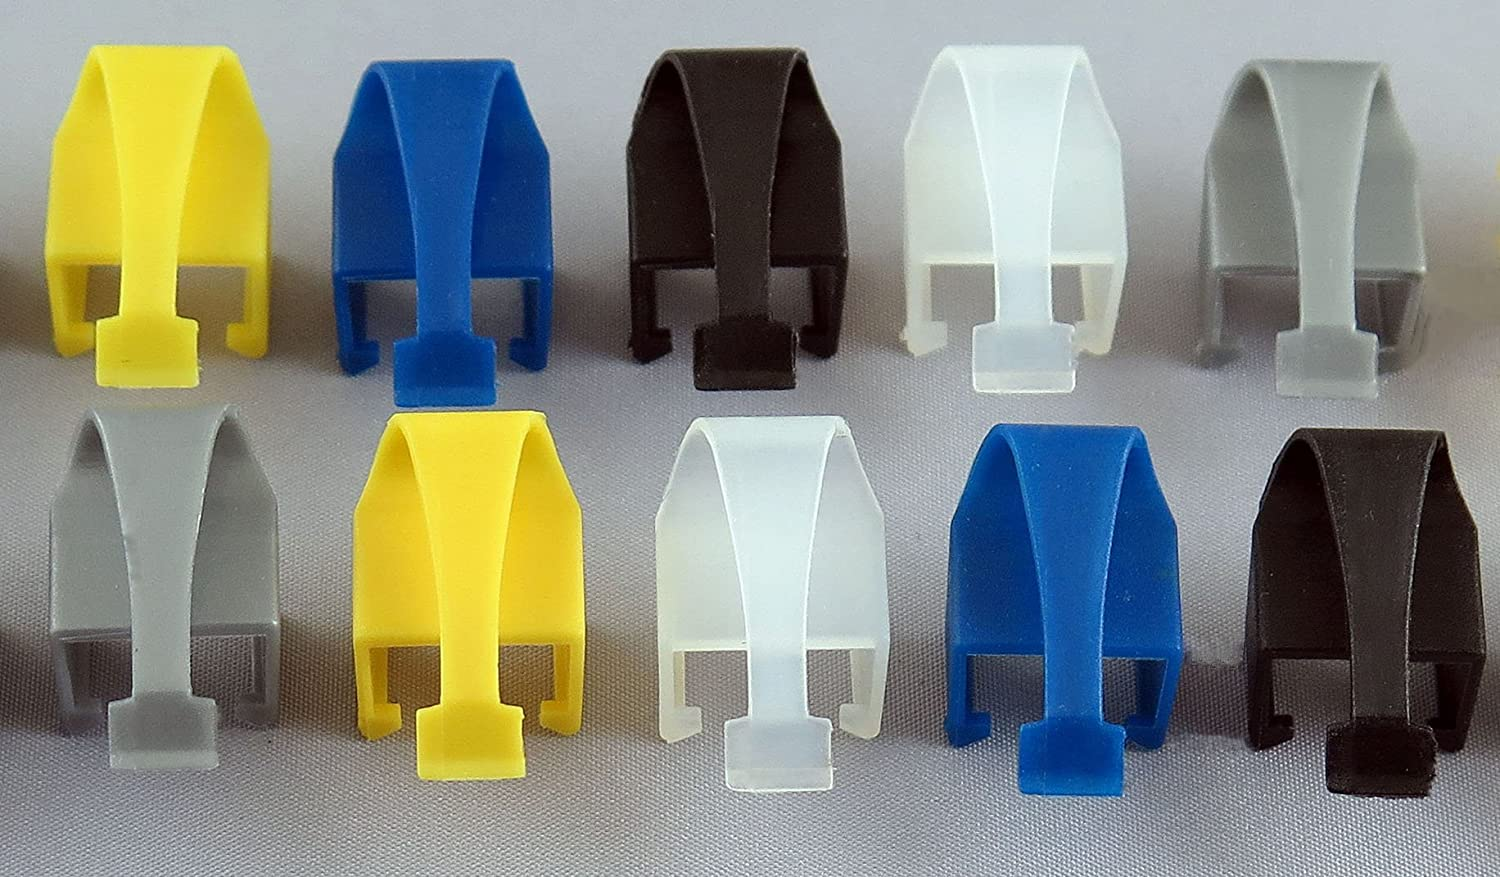 Columbus Mall RJCLIP - Broken RJ45 Connector Solution 10 Special price Assorted pcs: Colour